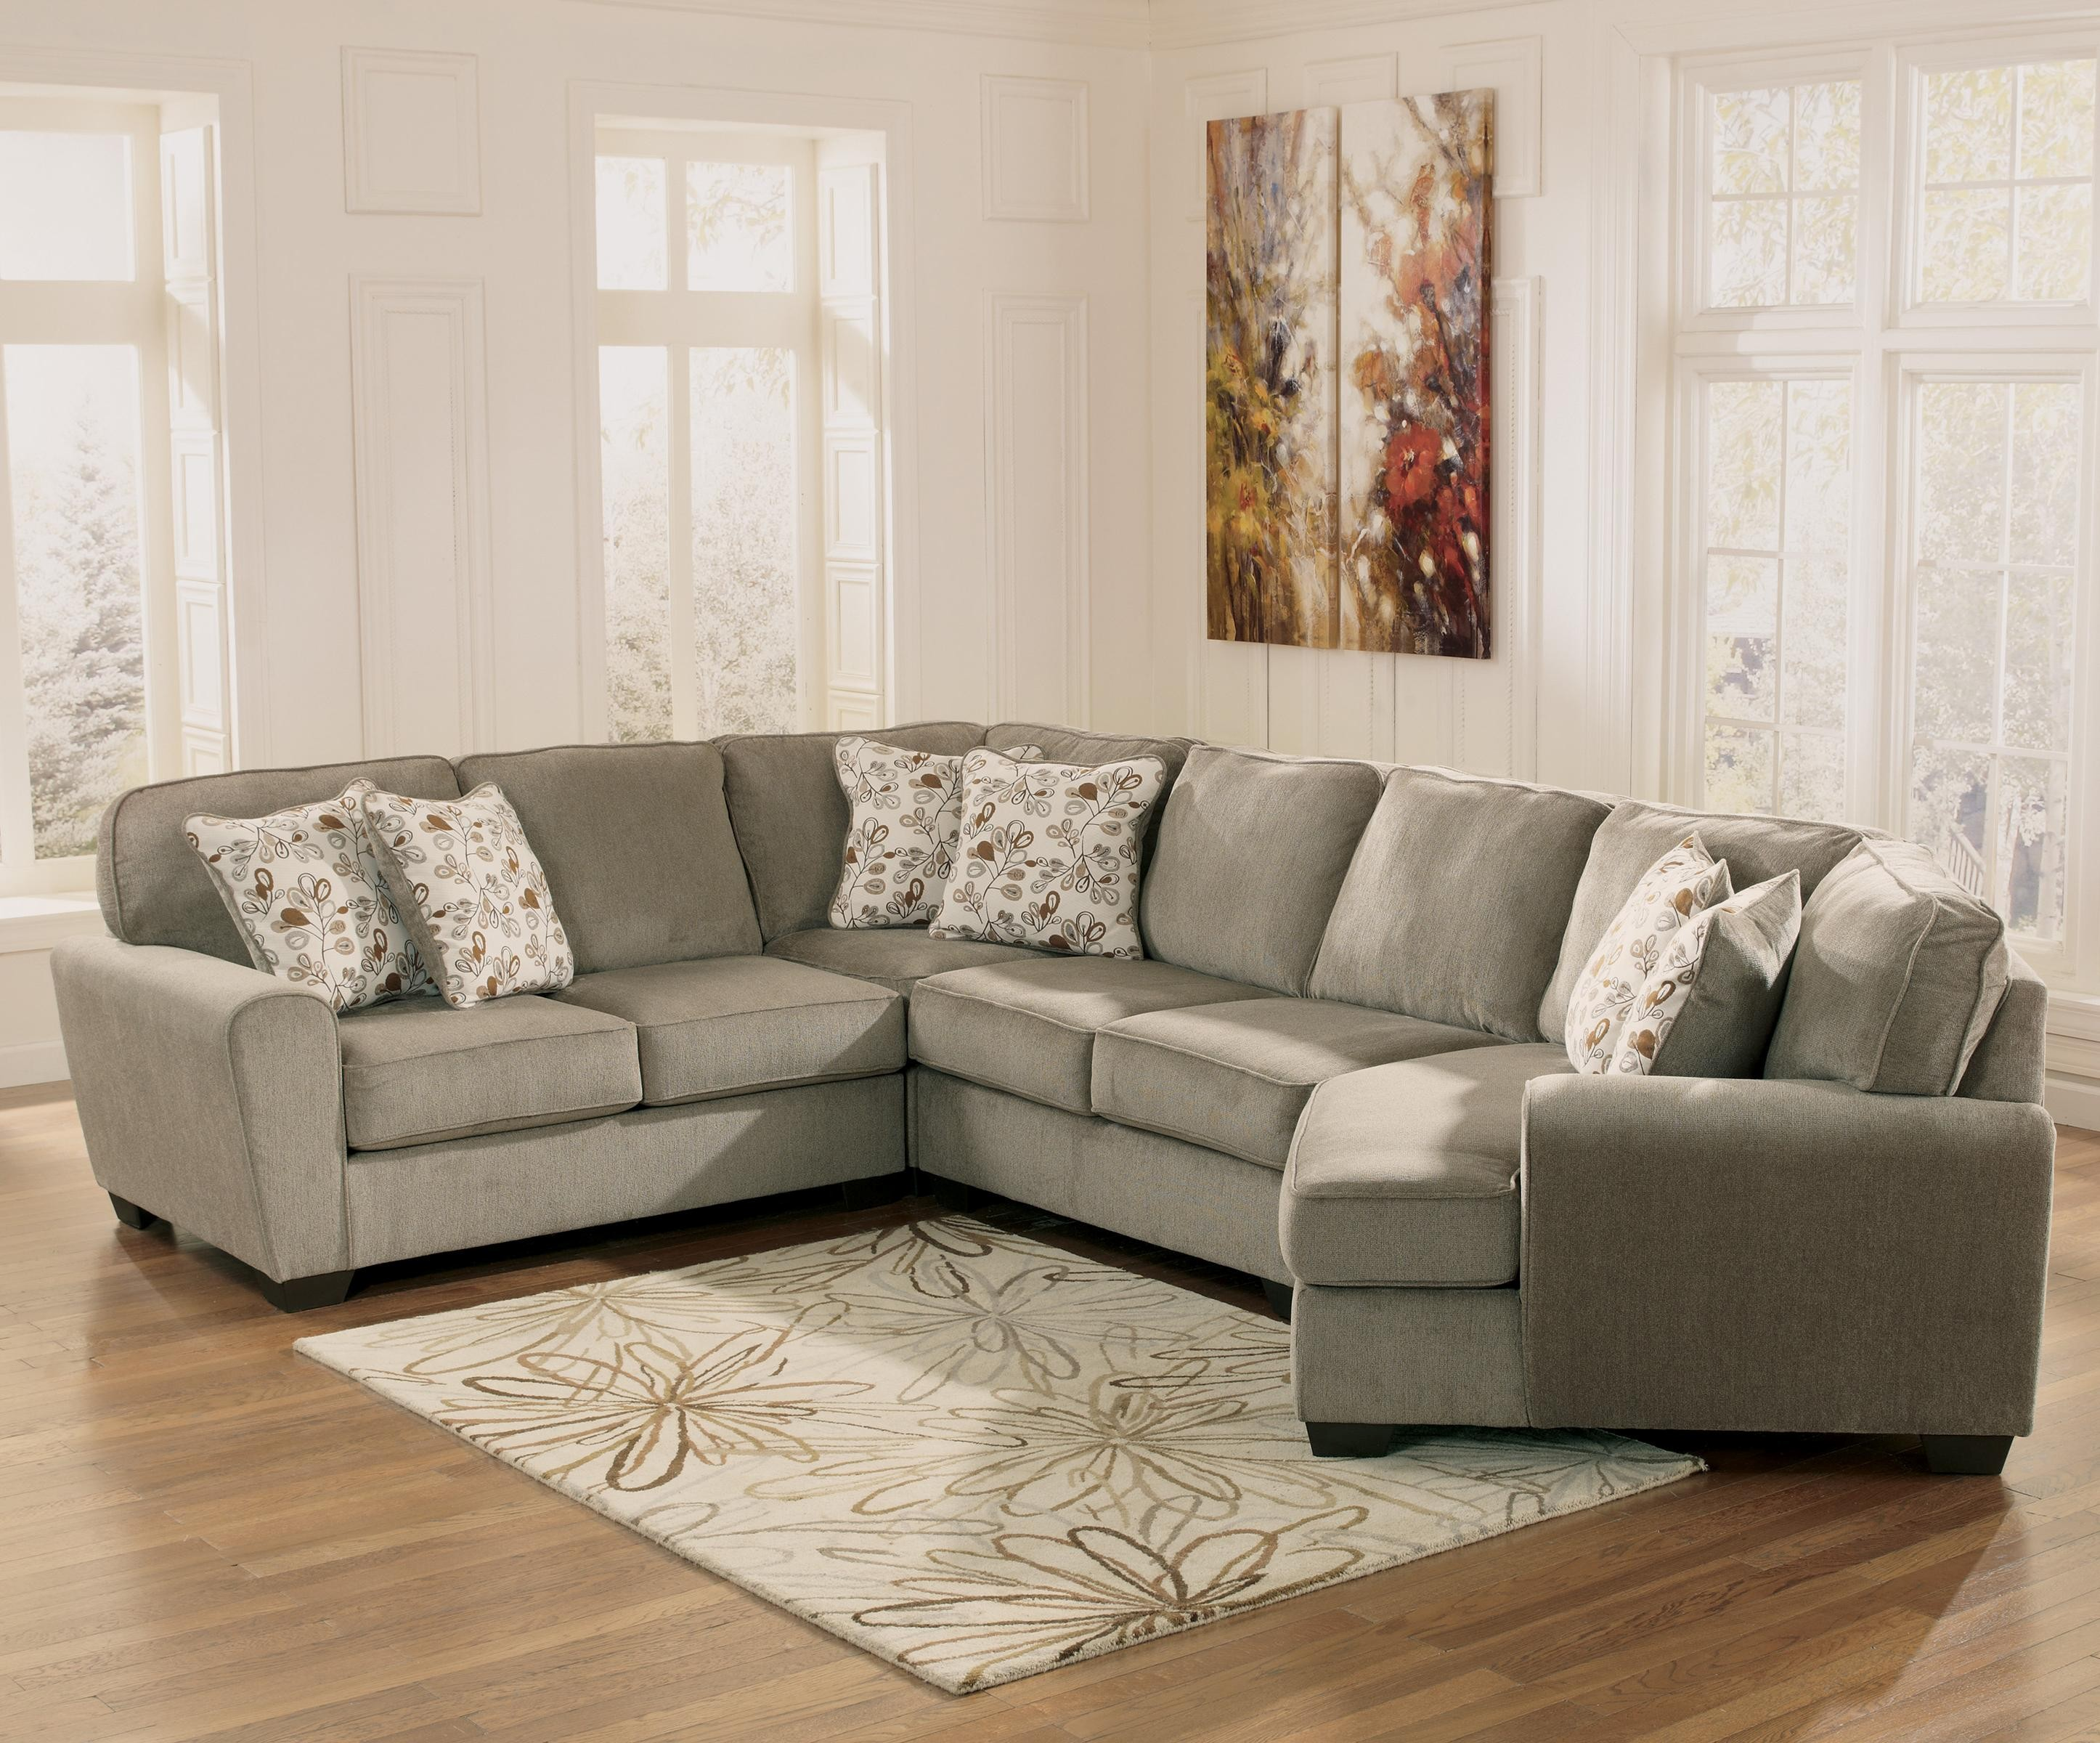 Sensational Cuddler Sectional Sofa Photograph